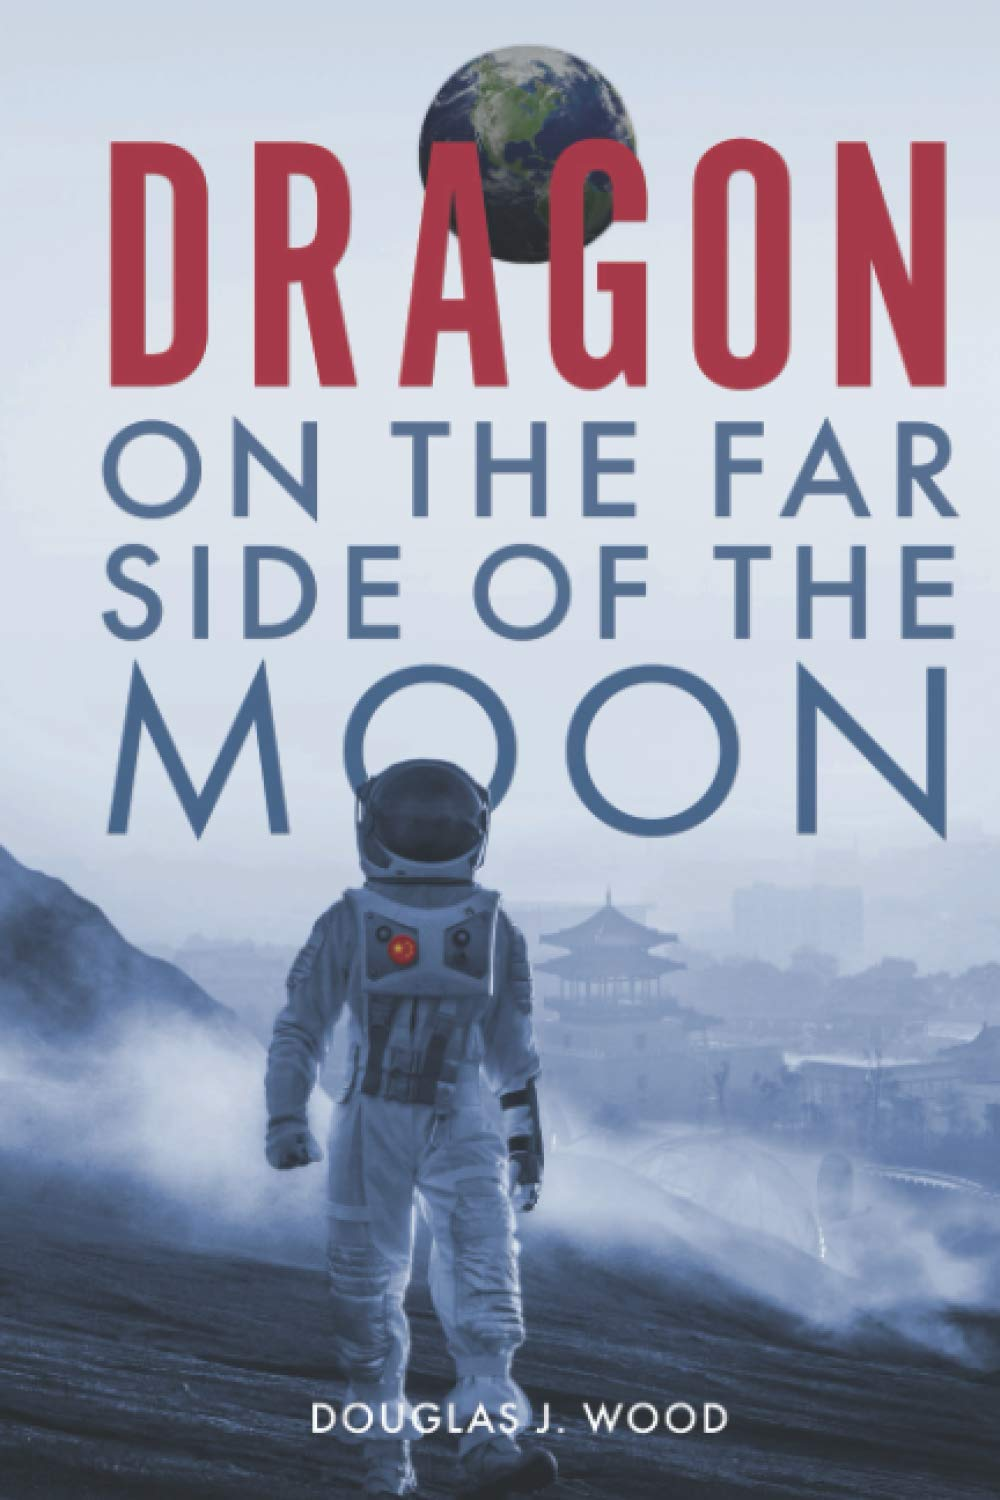 Dragon on the Far Side of the Moon